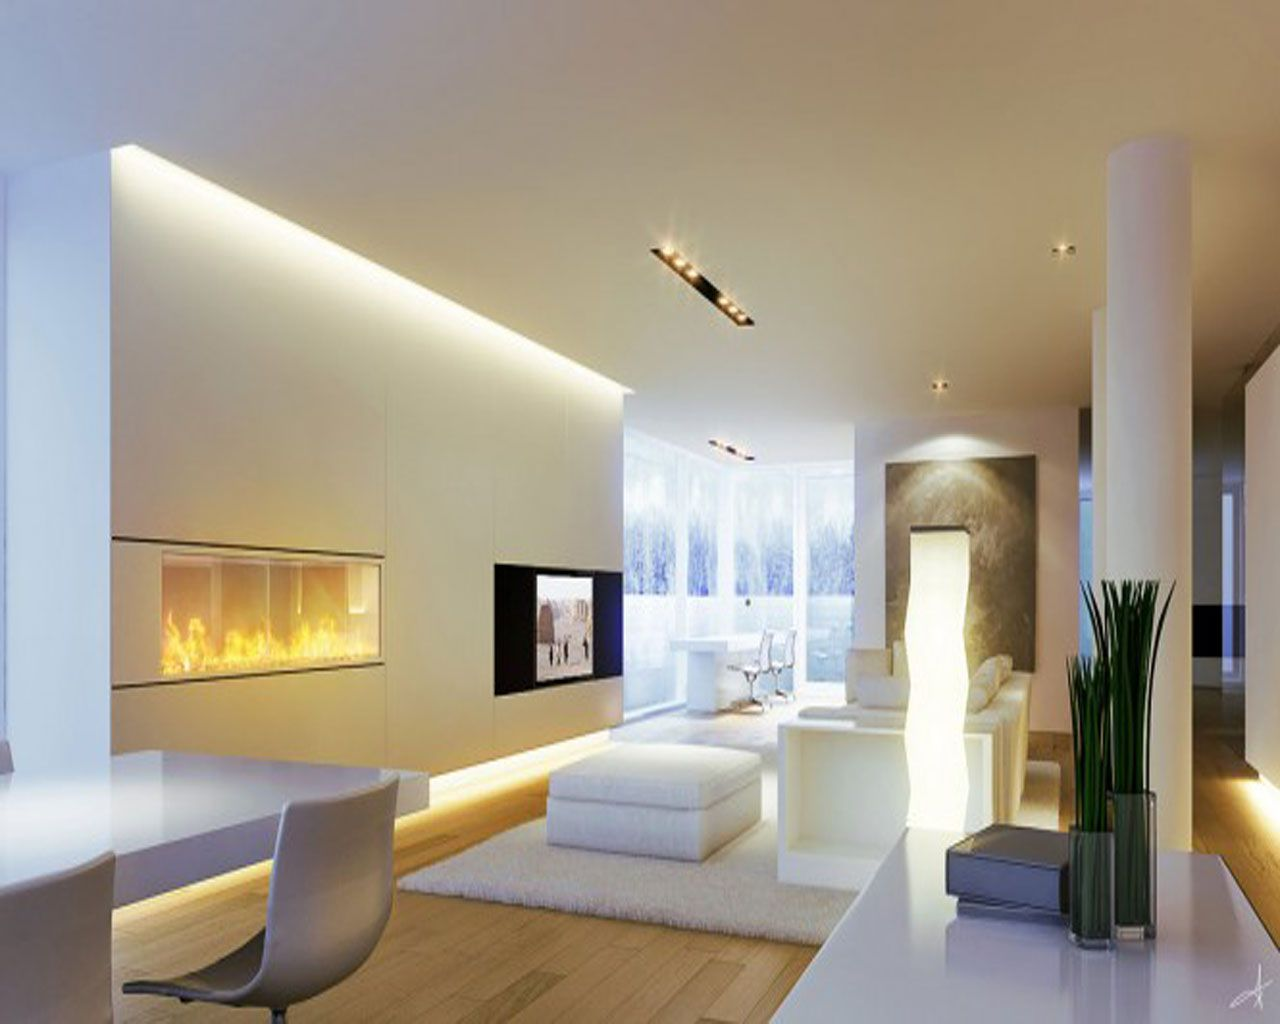 Extraordinary living room lighting design ideas inspiring for Modern living room lighting ideas